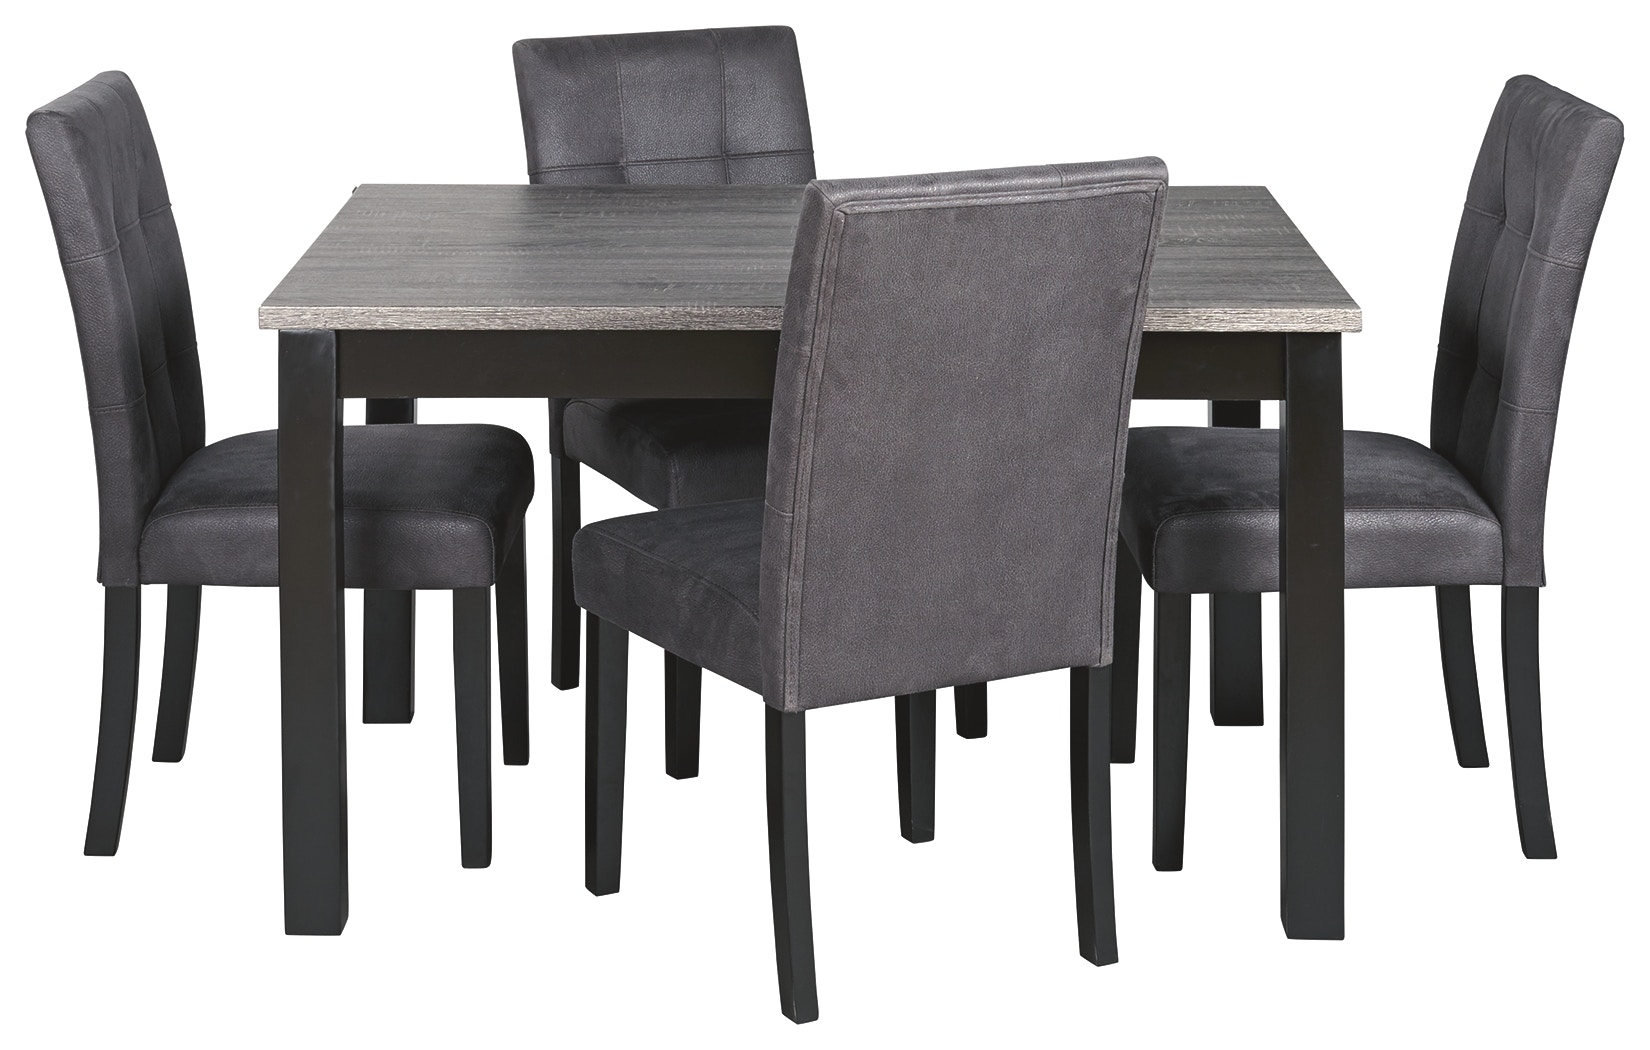 Signature Design By Ashley Garvine Dining Room Table And Chairs Set Of 5 D161 225 Markson S